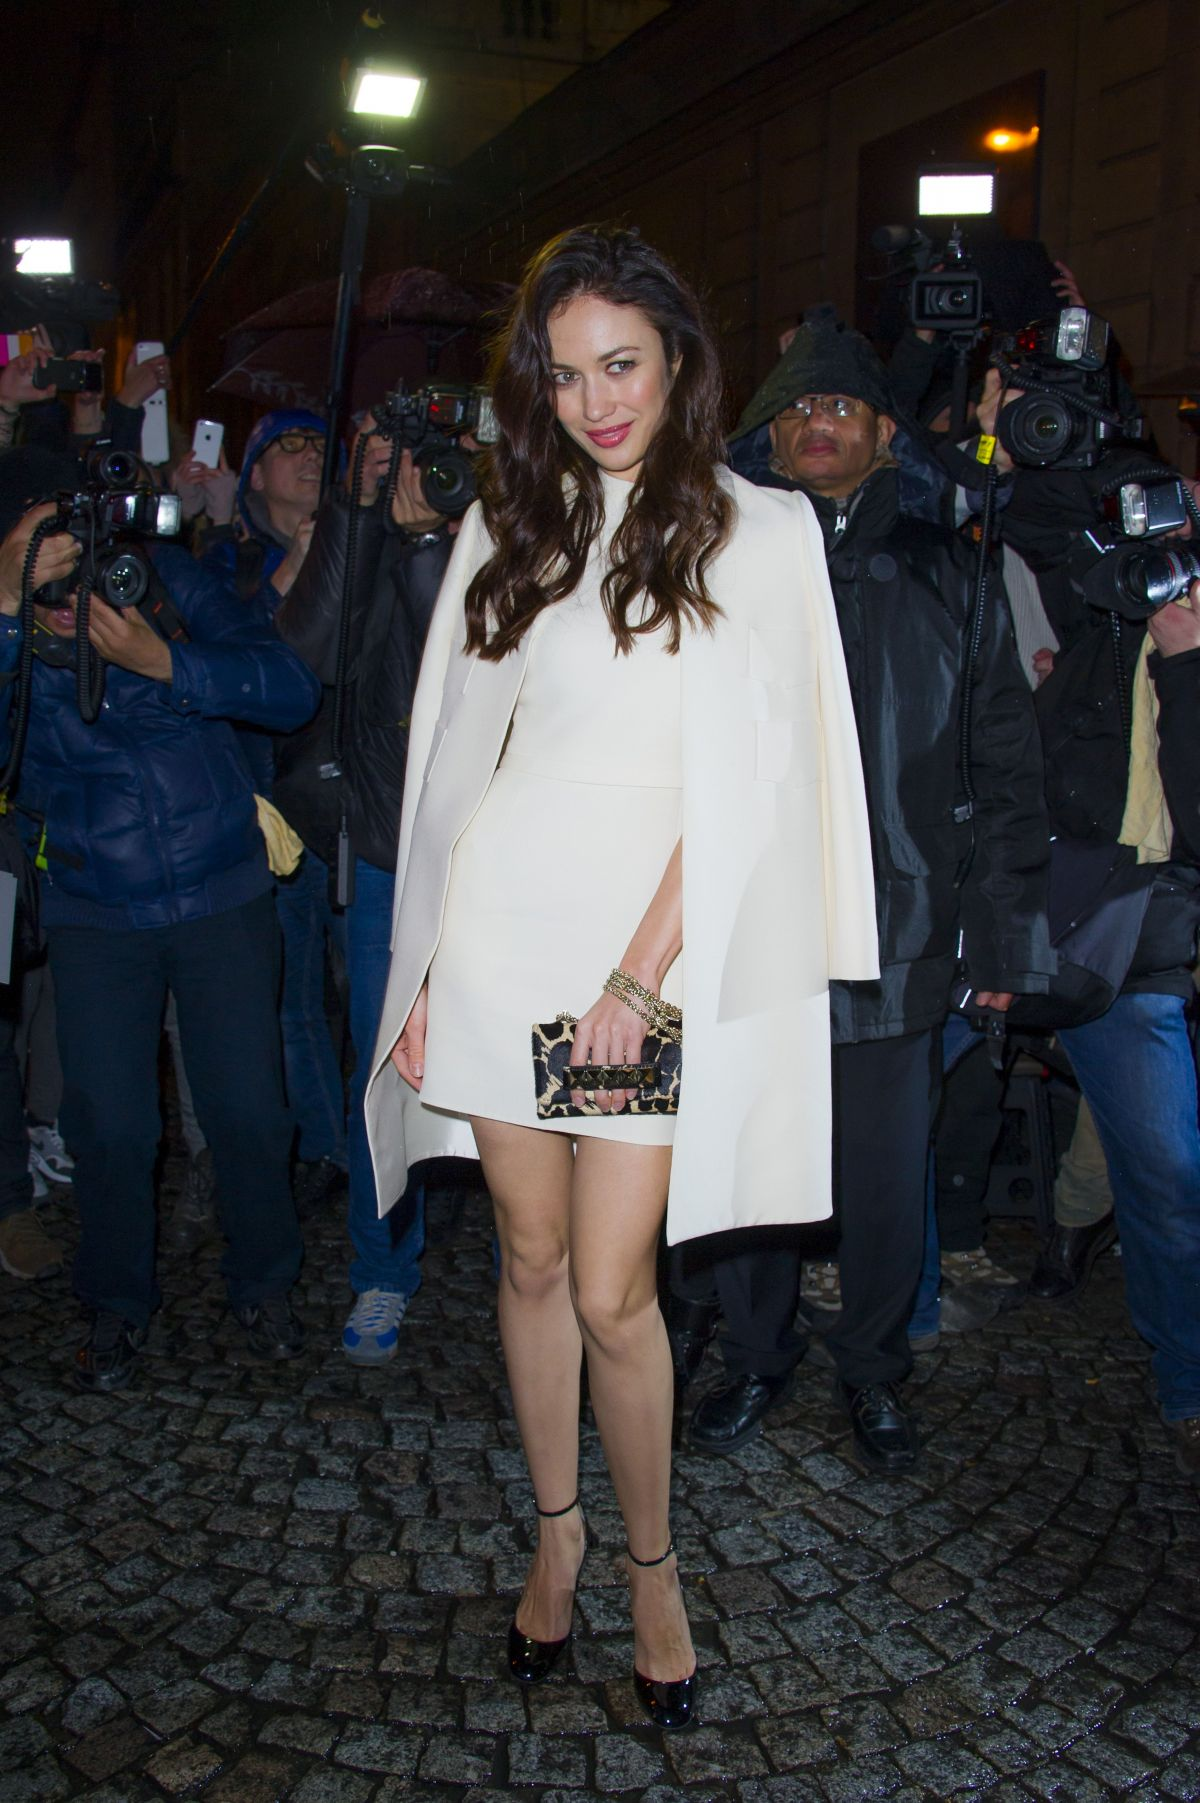 Matriarch | Bishop of The Citadel Olga-kurylenko-at-valentino-fashion-show-in-paris_1